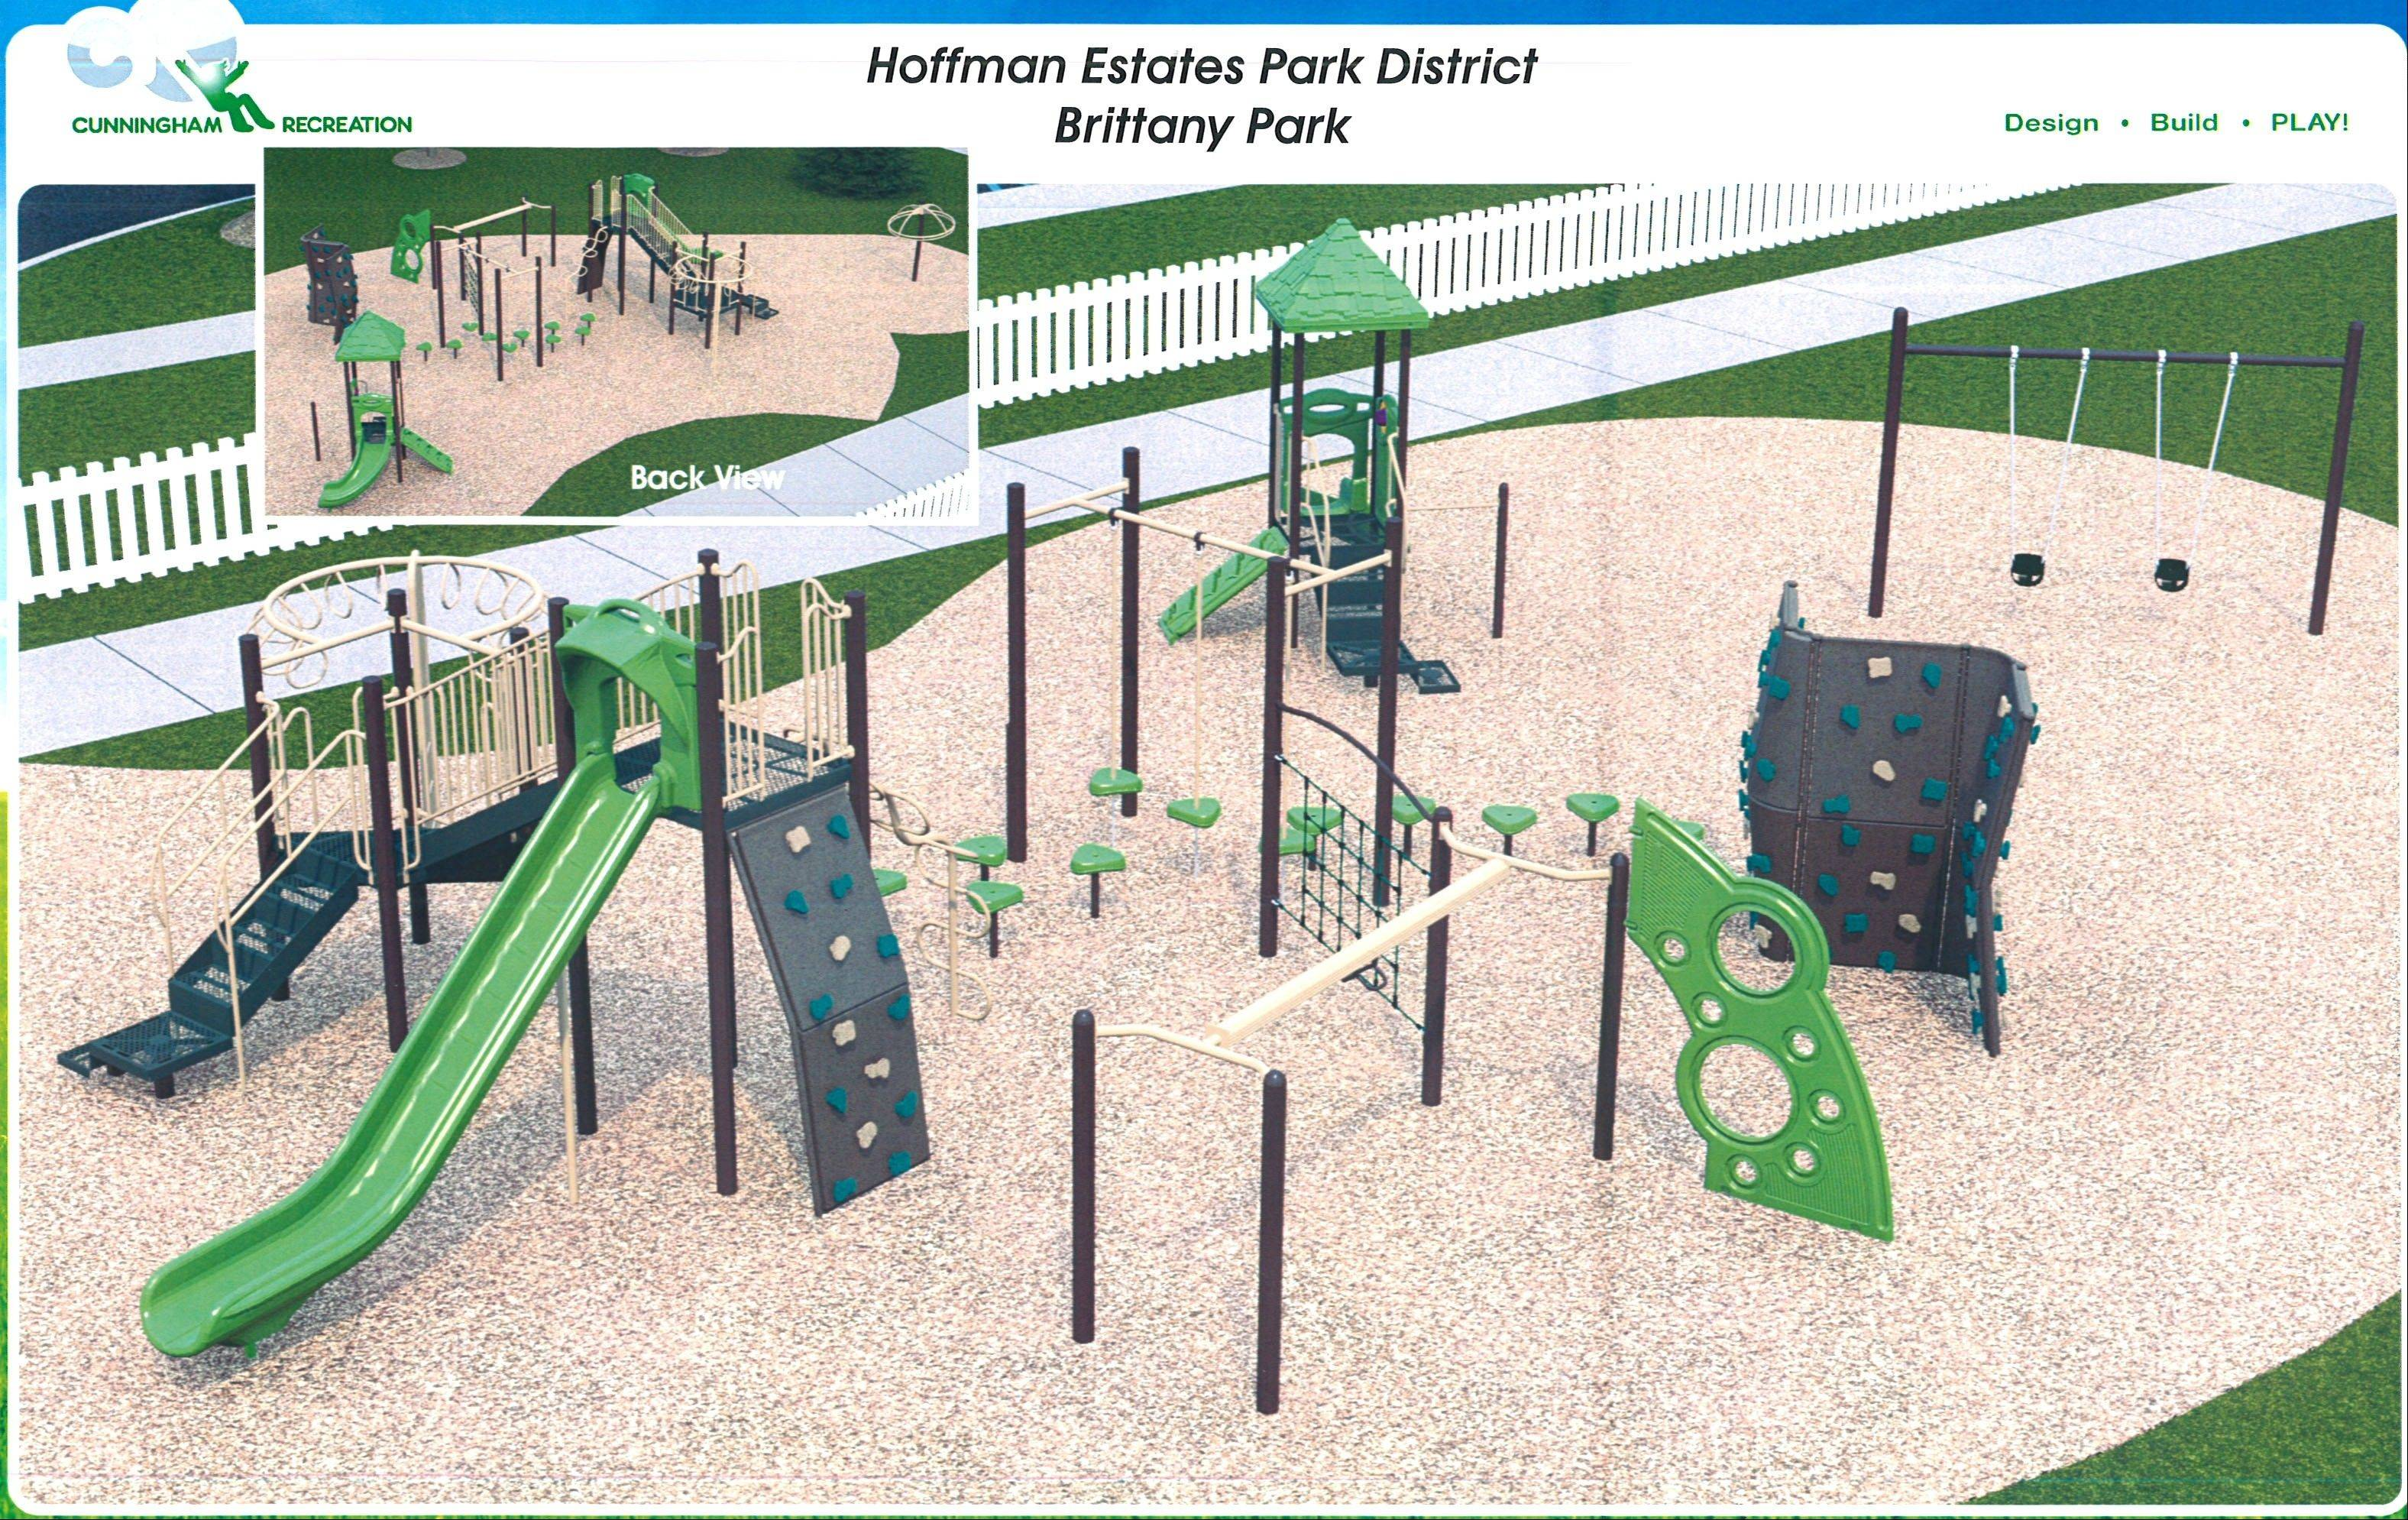 This is a rendering of the new playground that will be installed at Brittany Park, 1245 W. New Britton Drive, Hoffman Estates. The existing wood playground is deteriorating. The new playground will likely be installed by early summer.